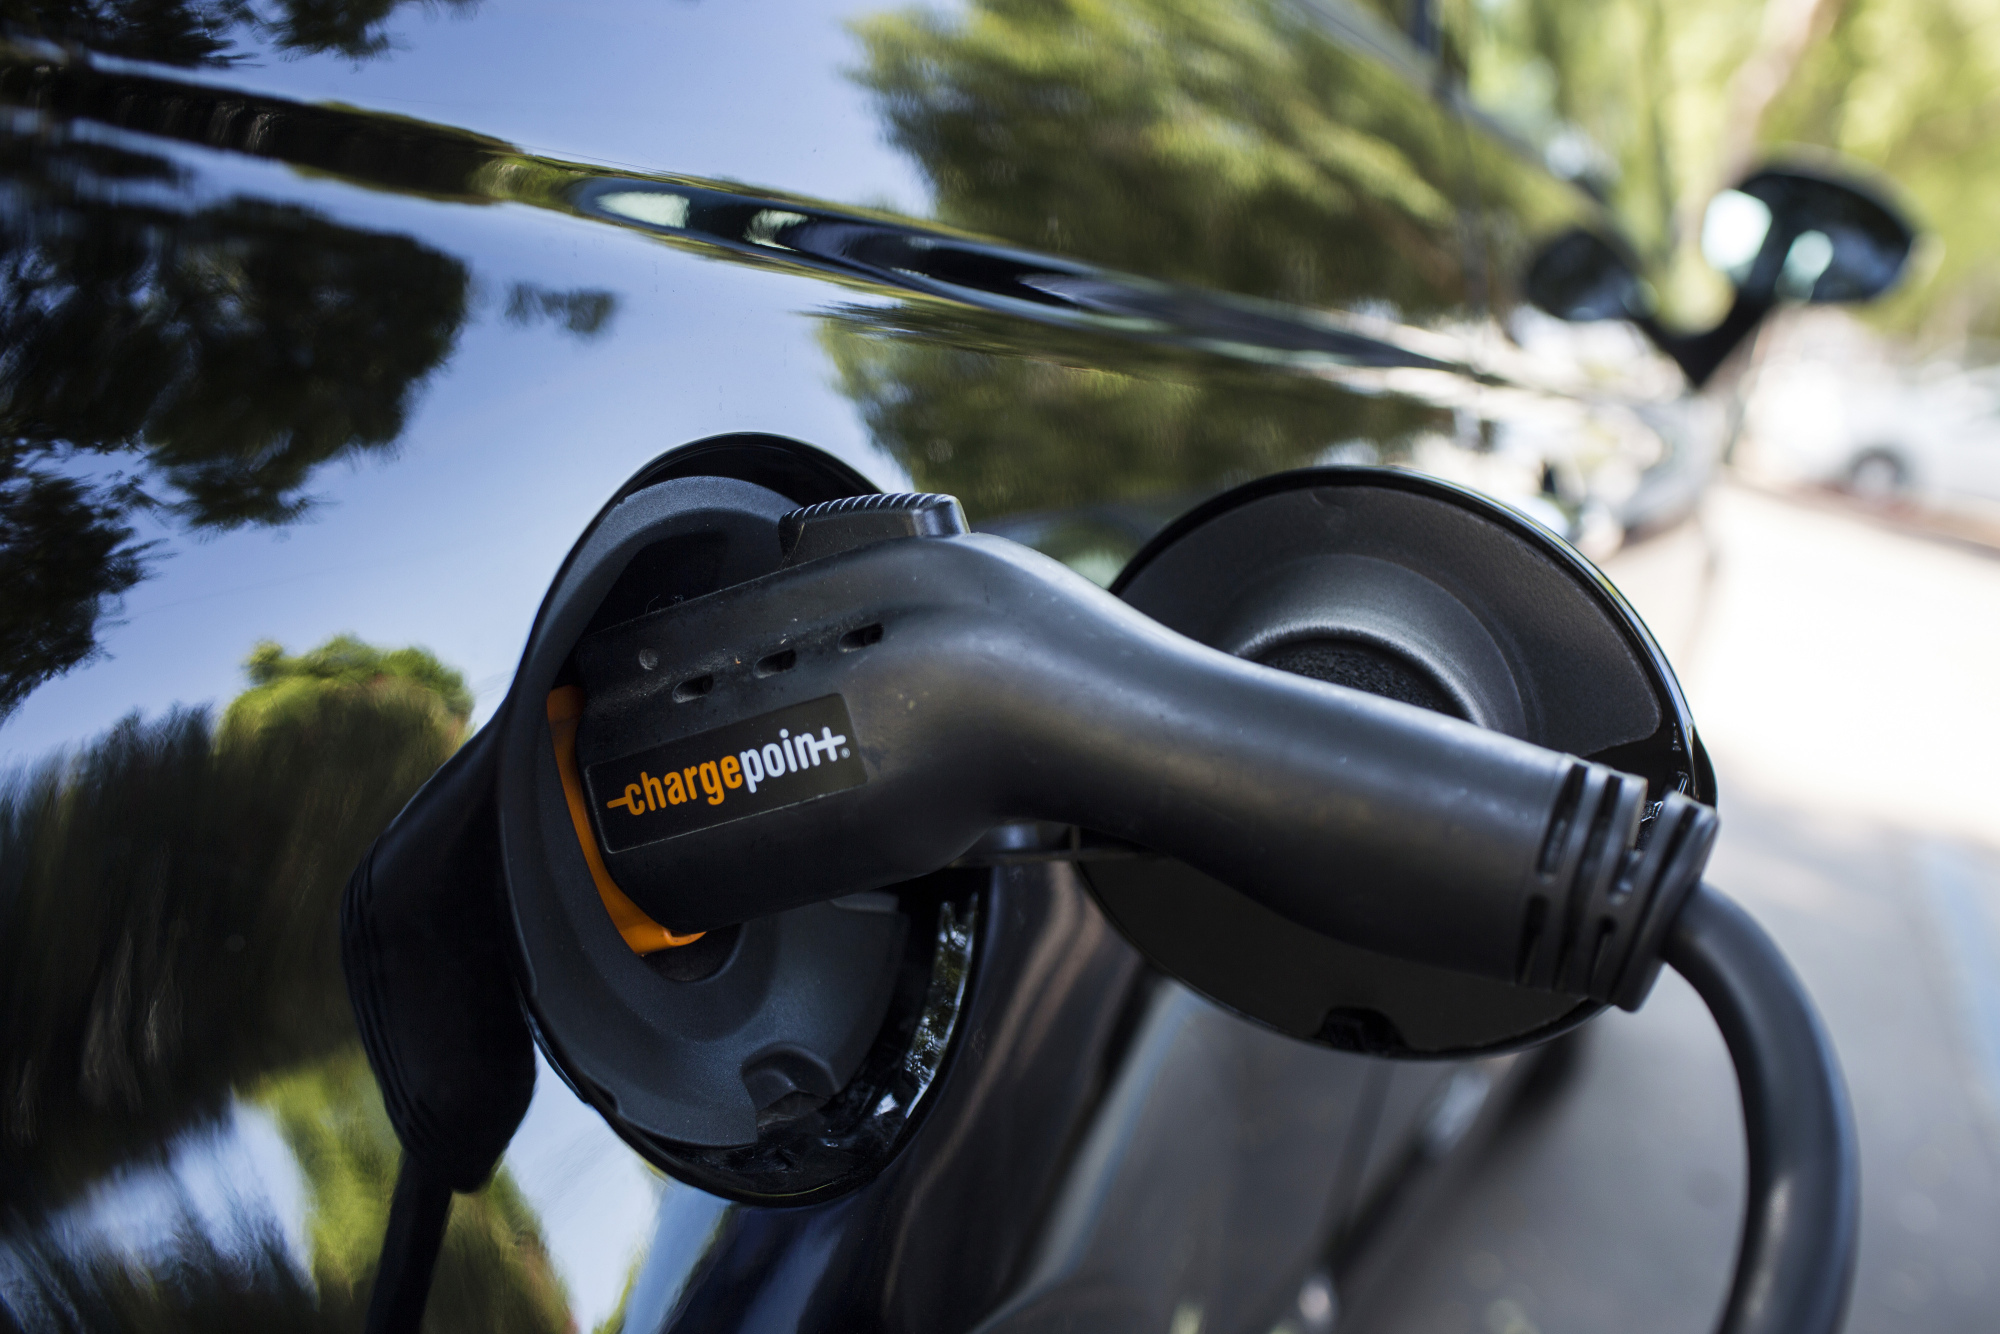 A ChargePoint Inc. charging plug sits connected to an electric vehicle at a station in Los Angeles, California.